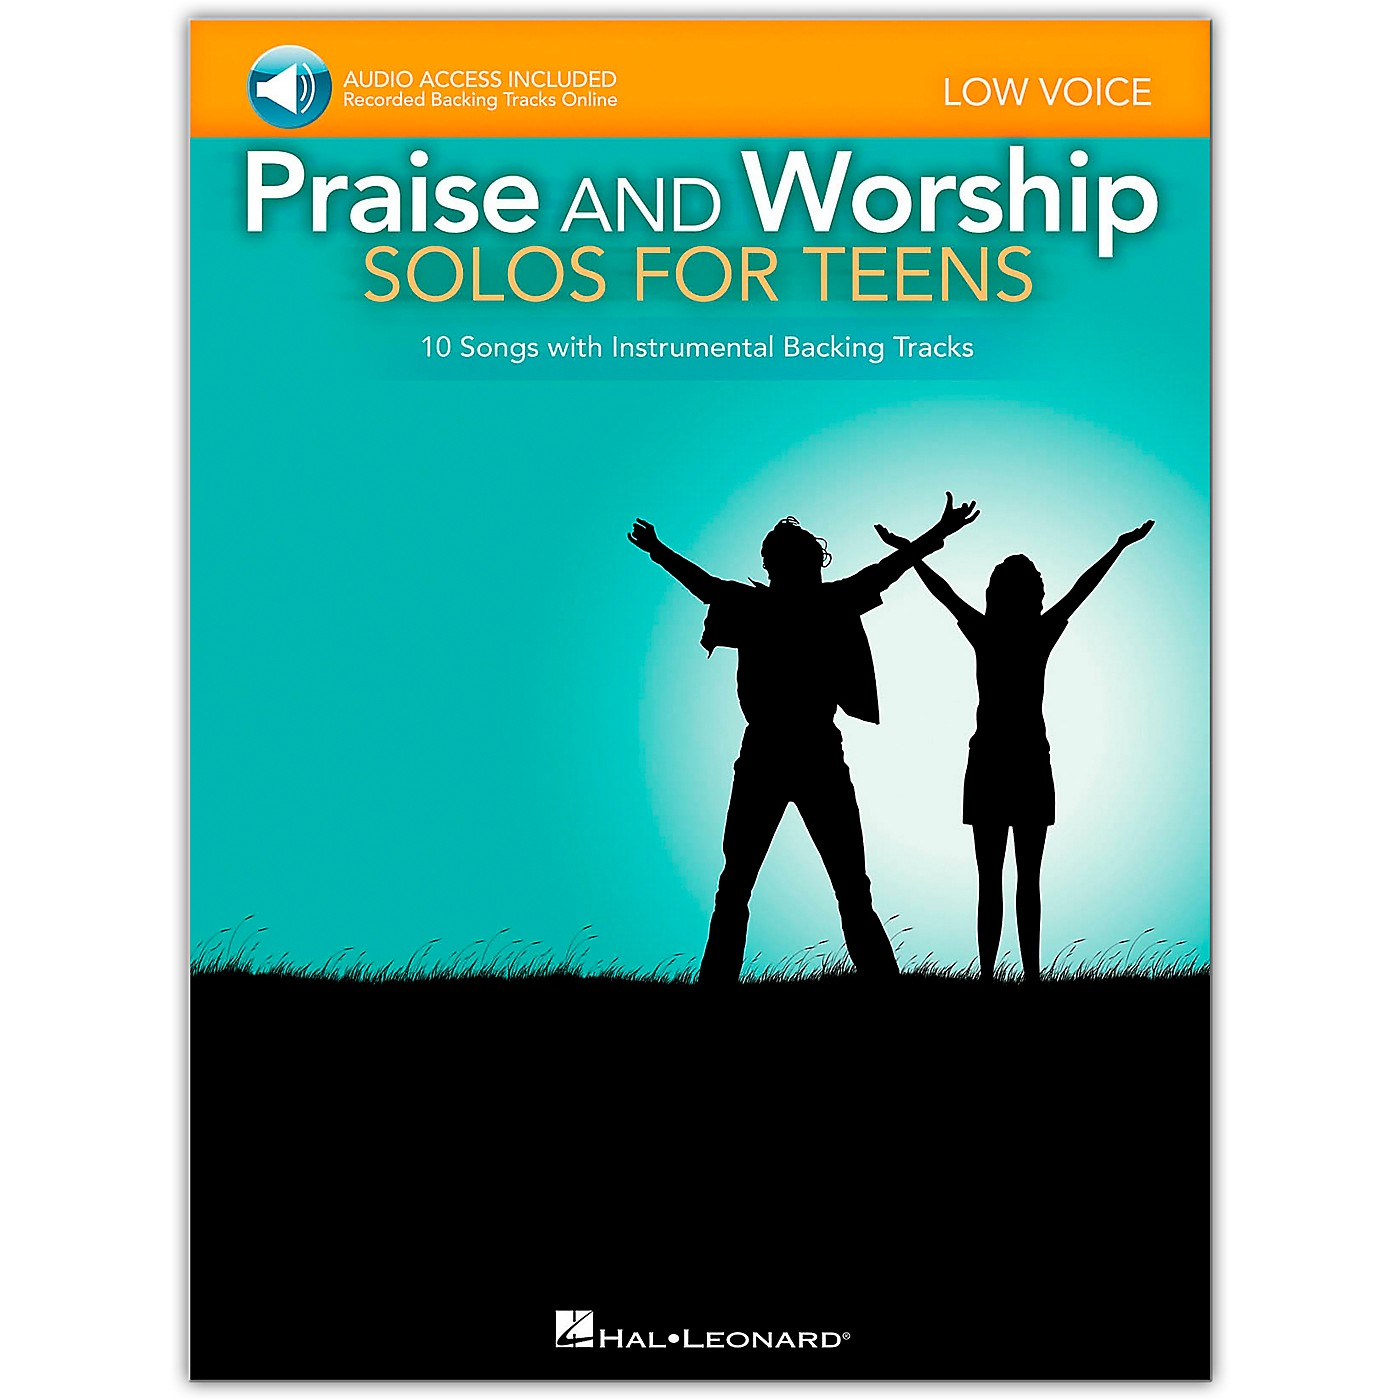 Hal Leonard Praise And Worship Solos For Teens - Low Voice - Book/Online Audio thumbnail